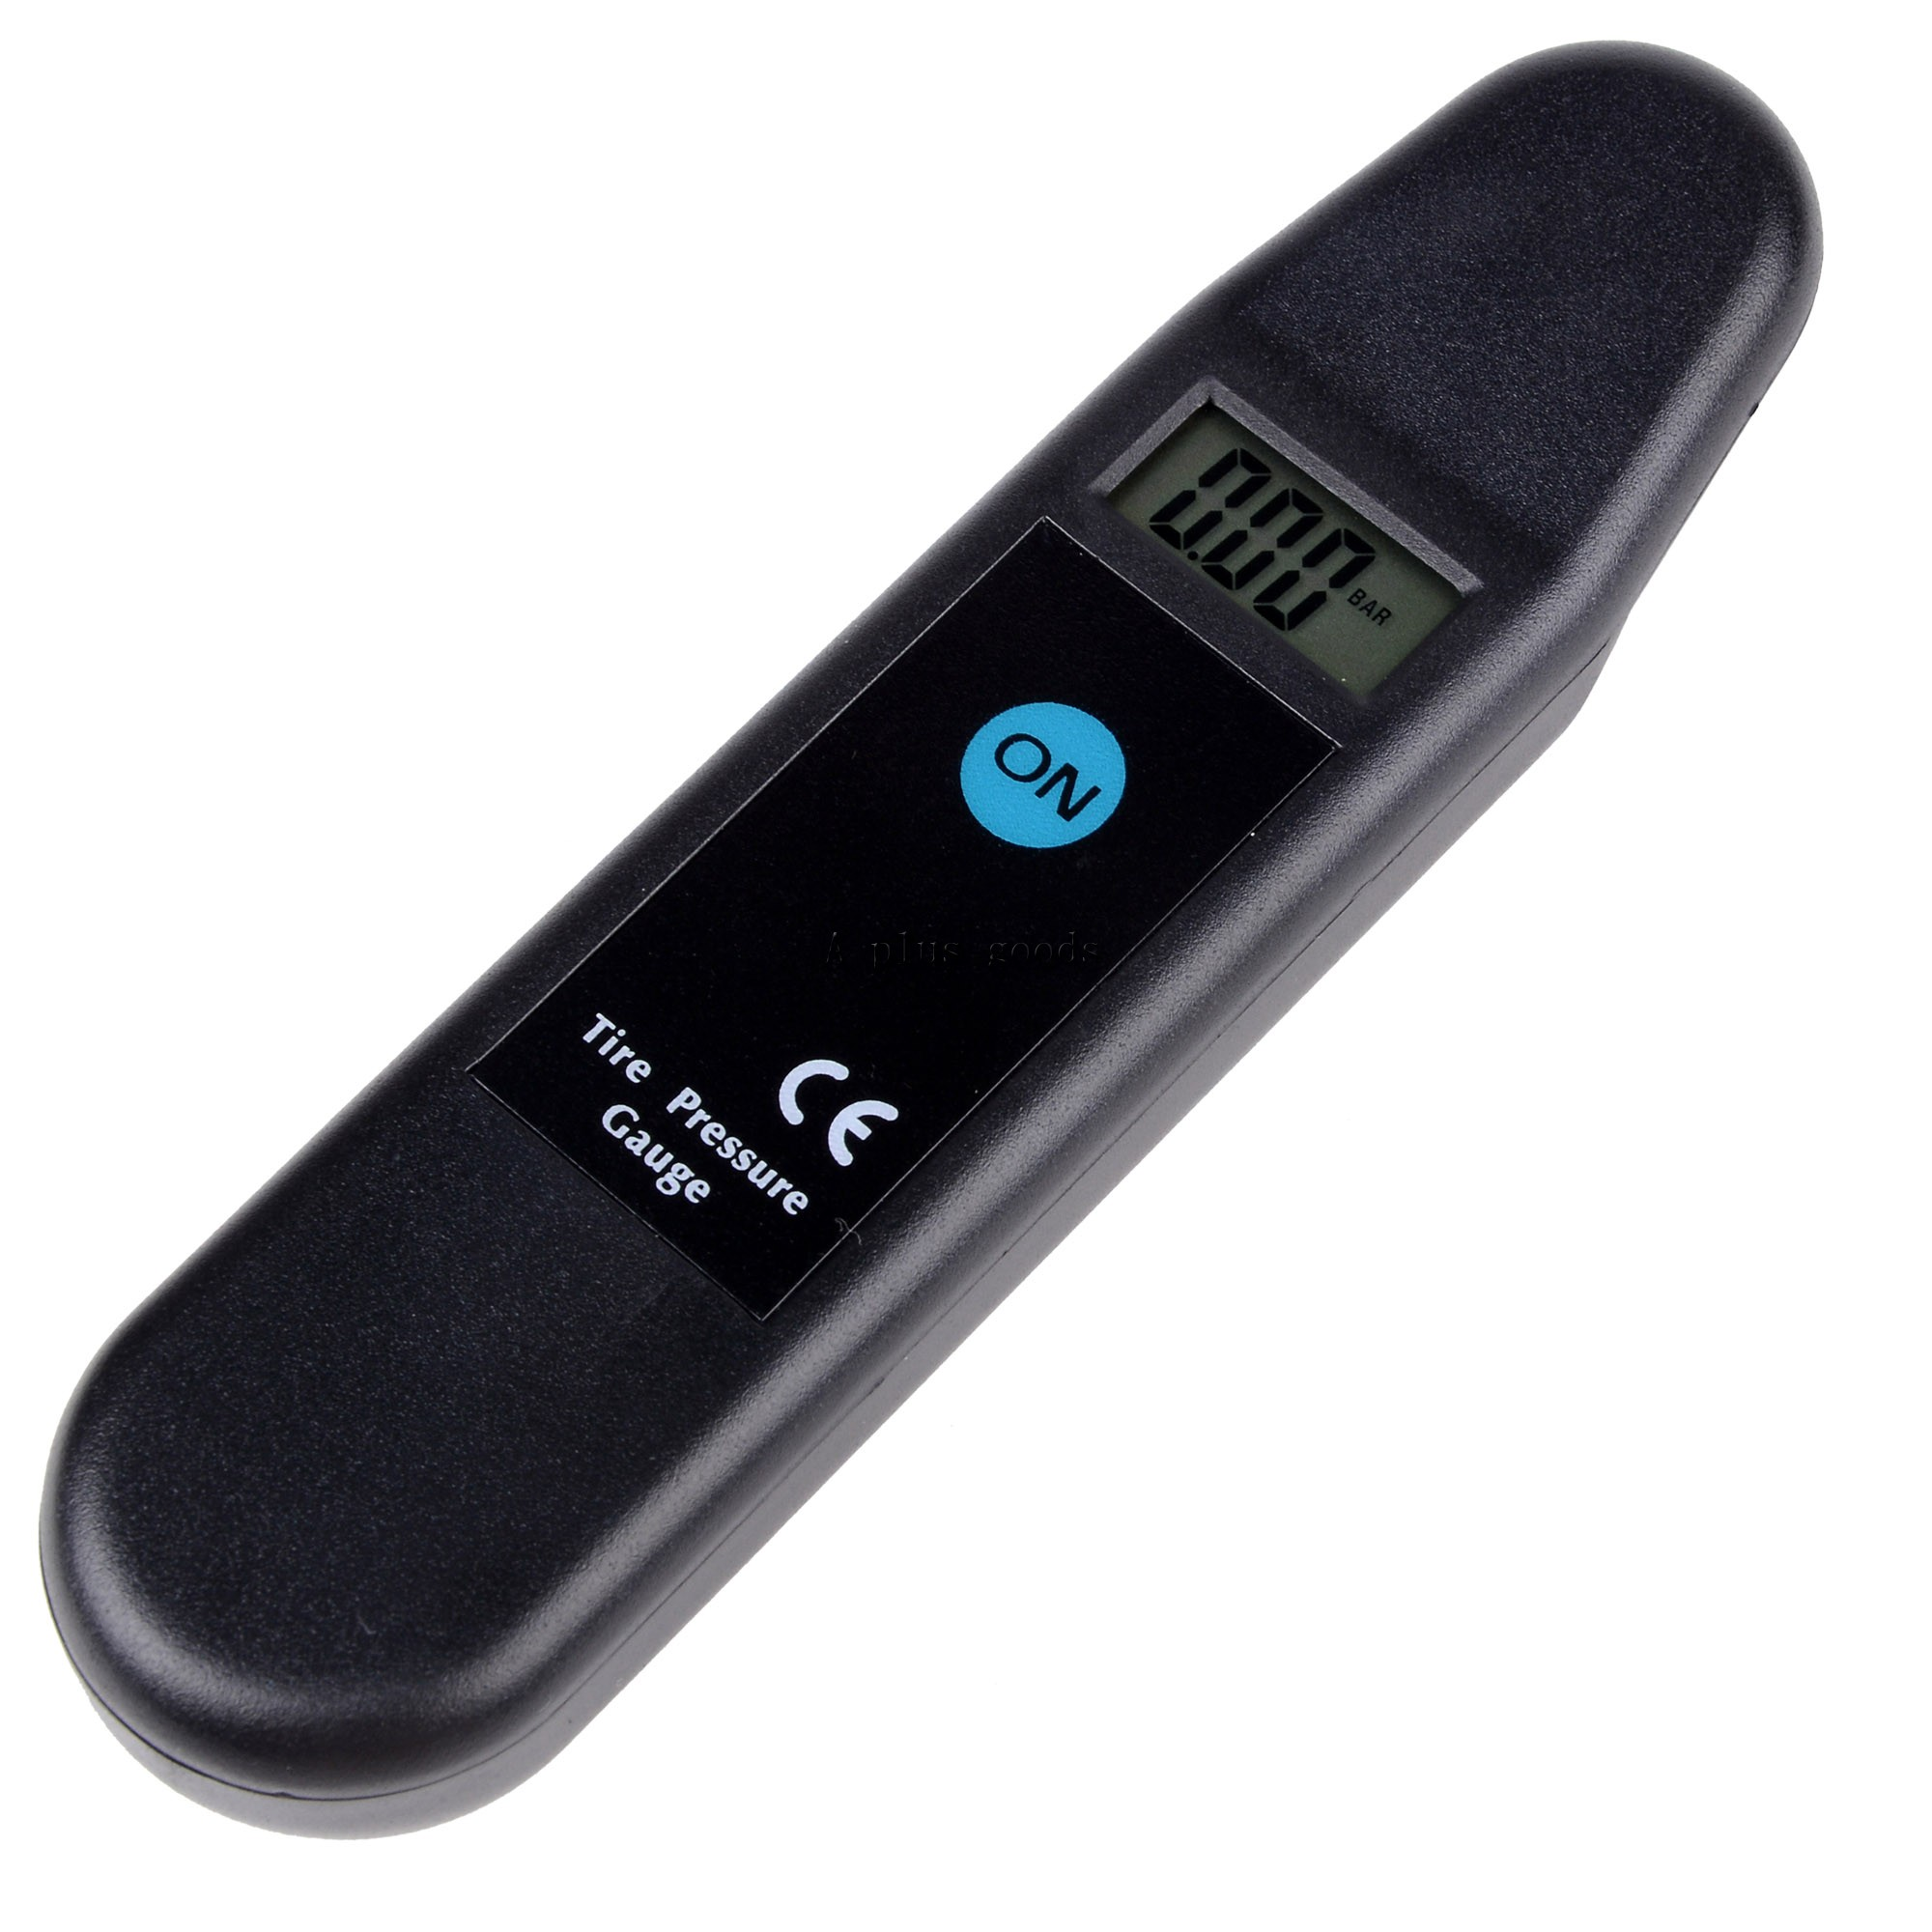 High Accuracy Auto Wheel Air Digital Tire Gauges Car Pressure Meter Test Tyre Testers Vehicle Motorcycle Precision(China (Mainland))